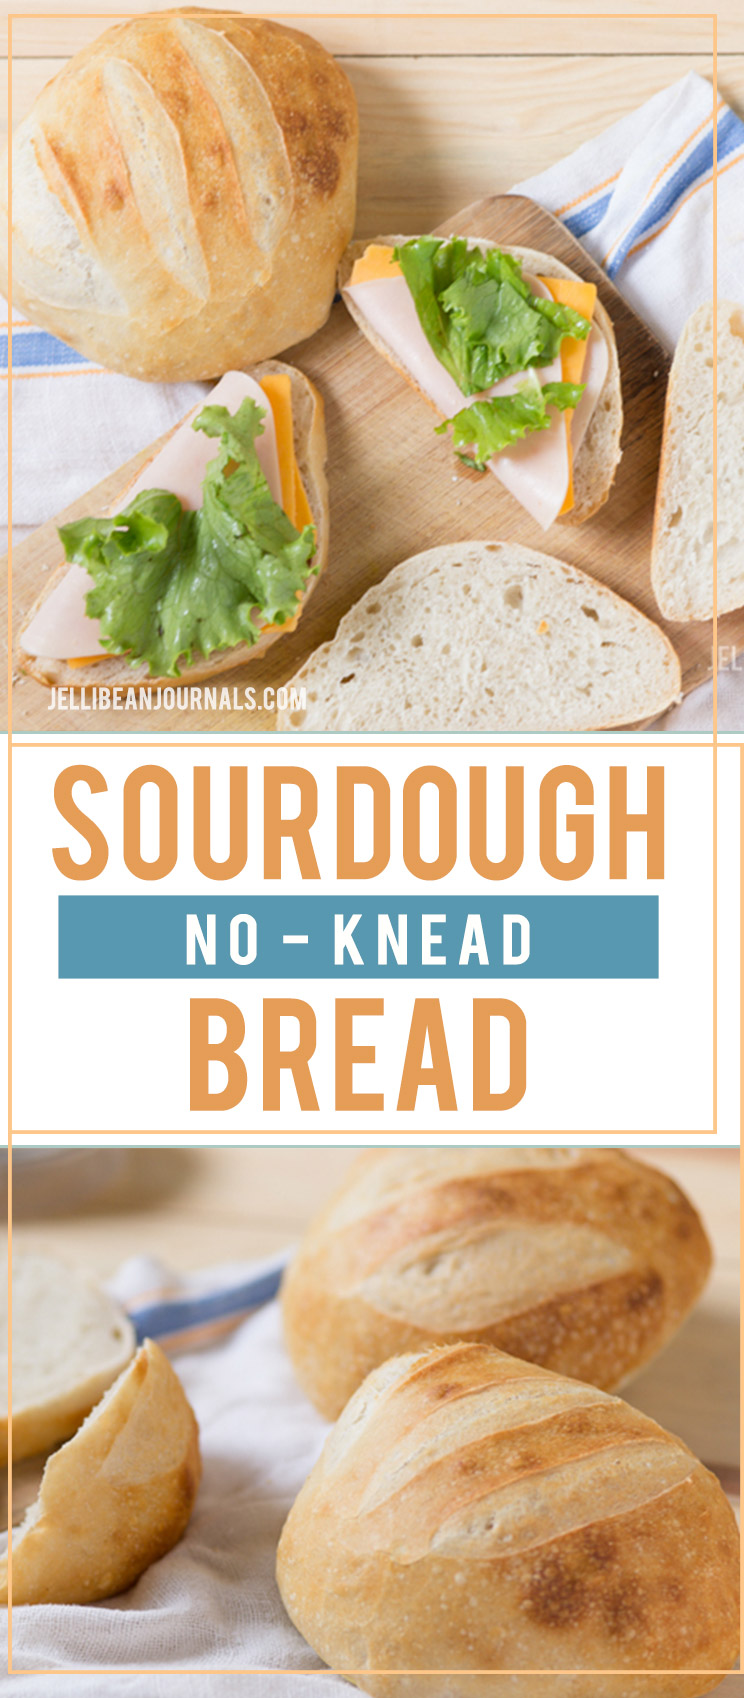 Hands-off simple no knead sourdough bread | Jellibeanjournals.com